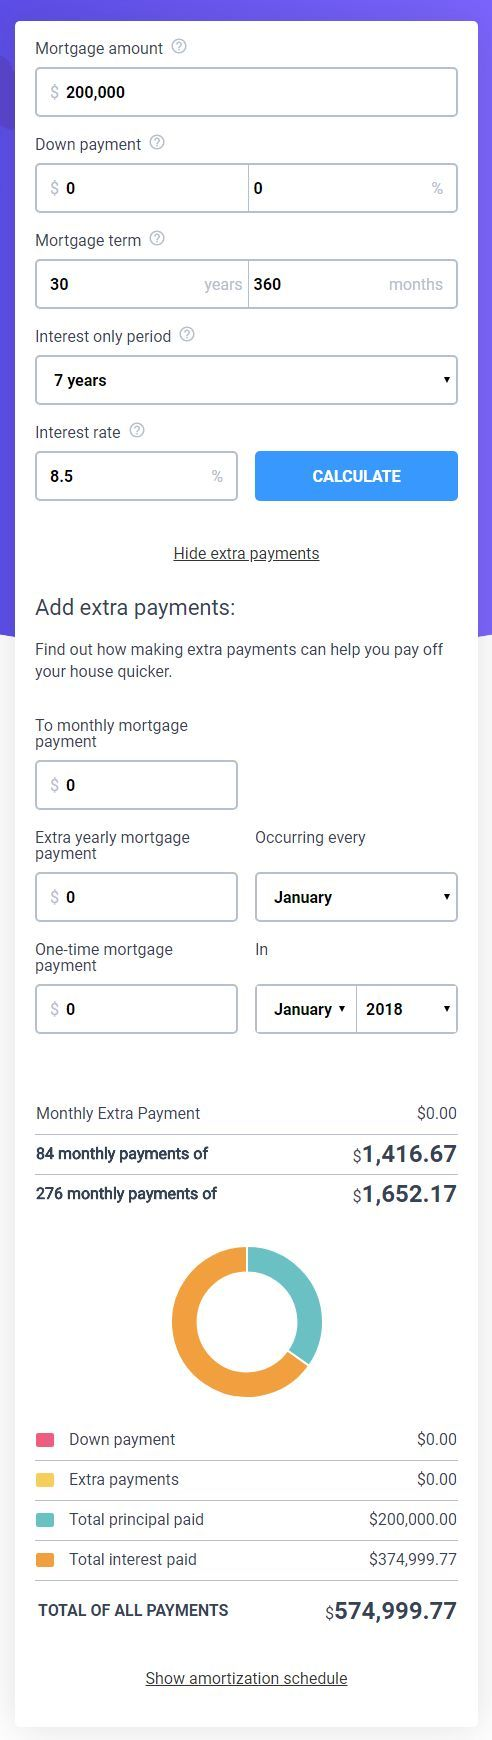 Free Interest Only Mortgage Calculator To Quickly Estimate Your